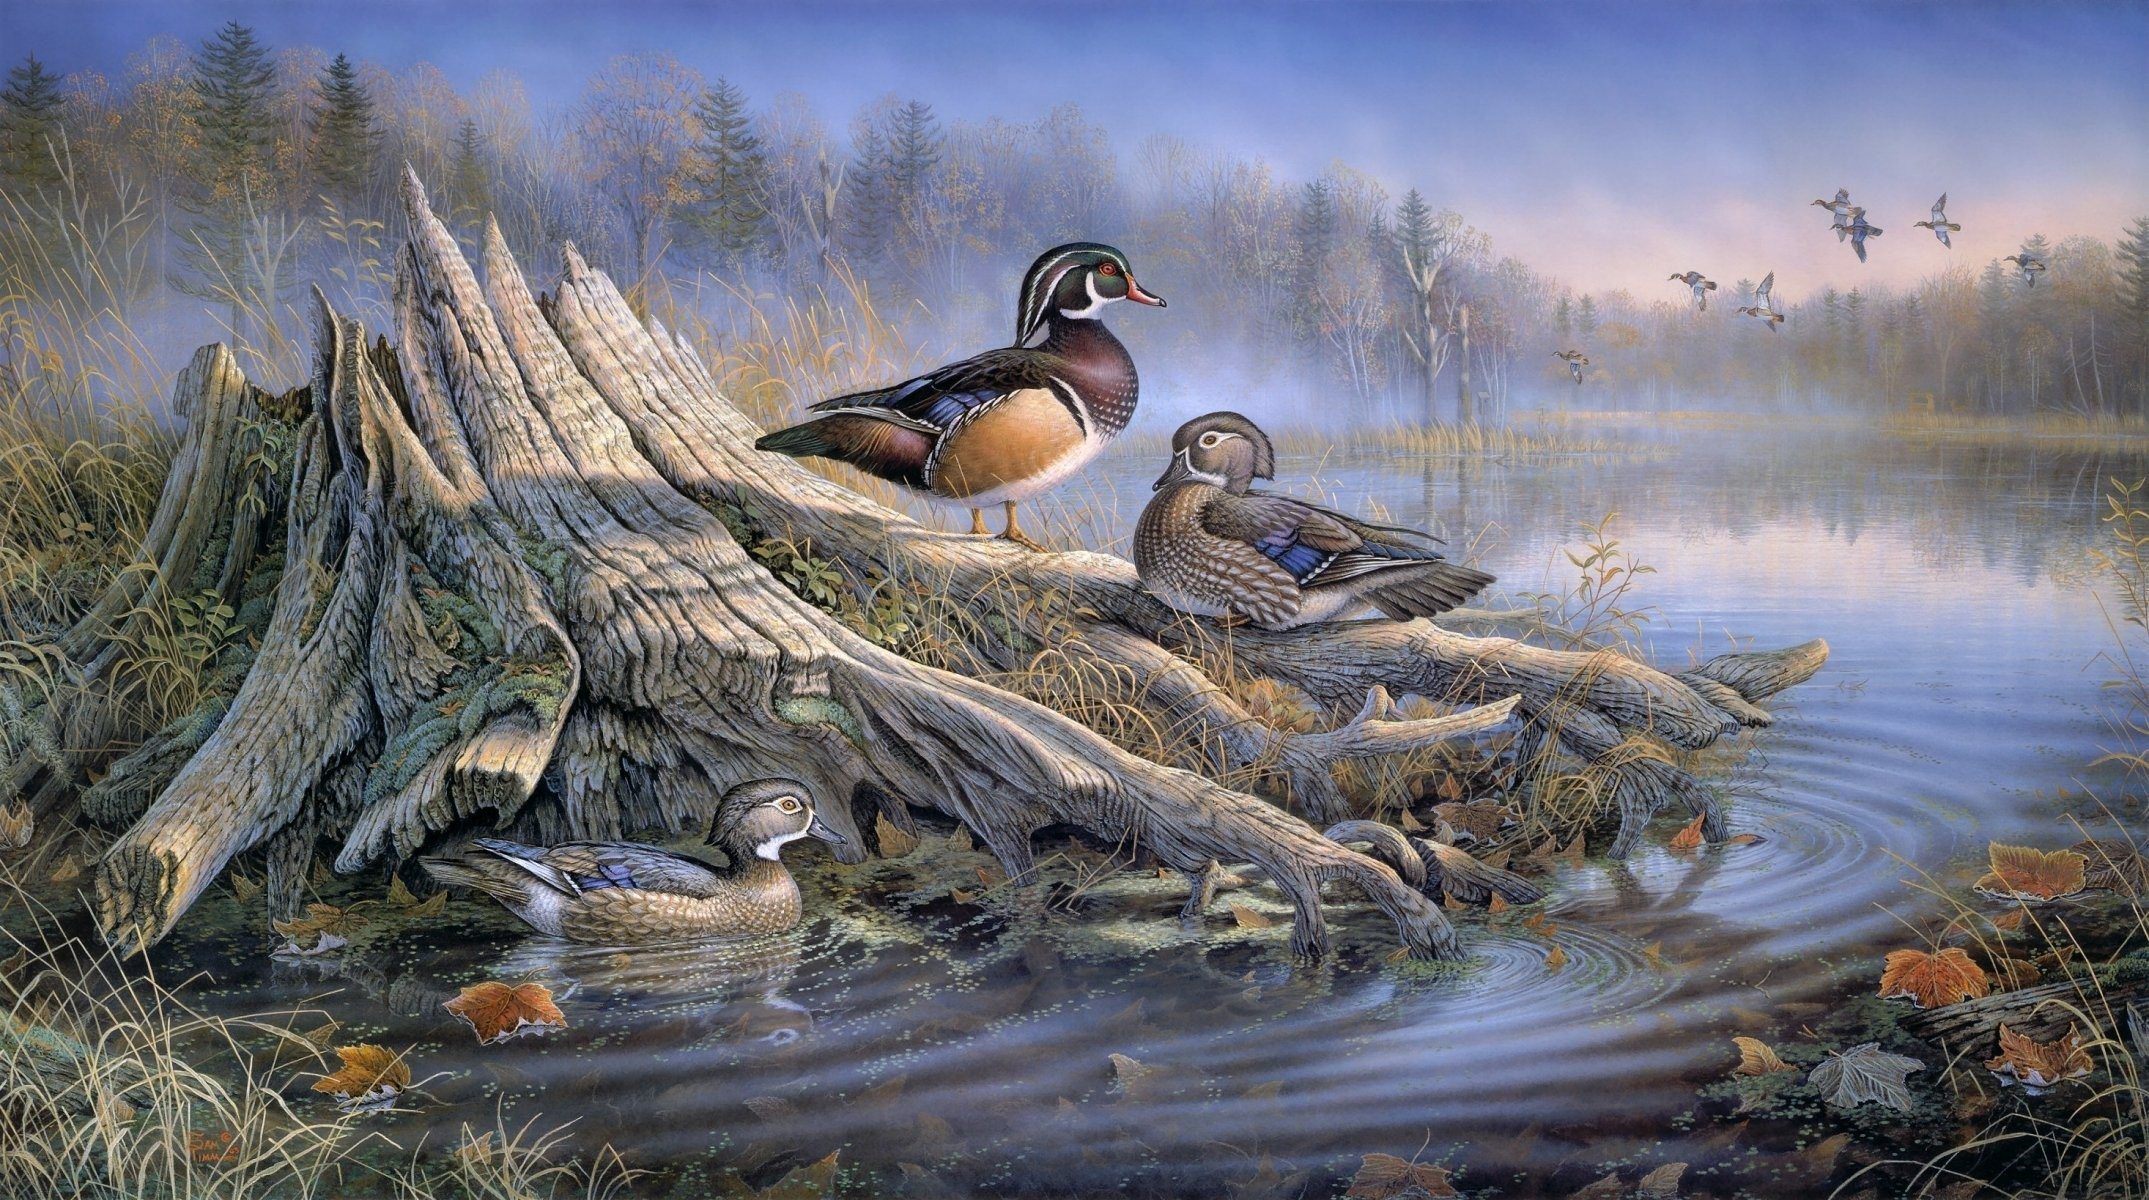 Res: 2149x1200, sam timm backyard solitude art painting duck autumn autumn leaves stump  water lake forest fog animal